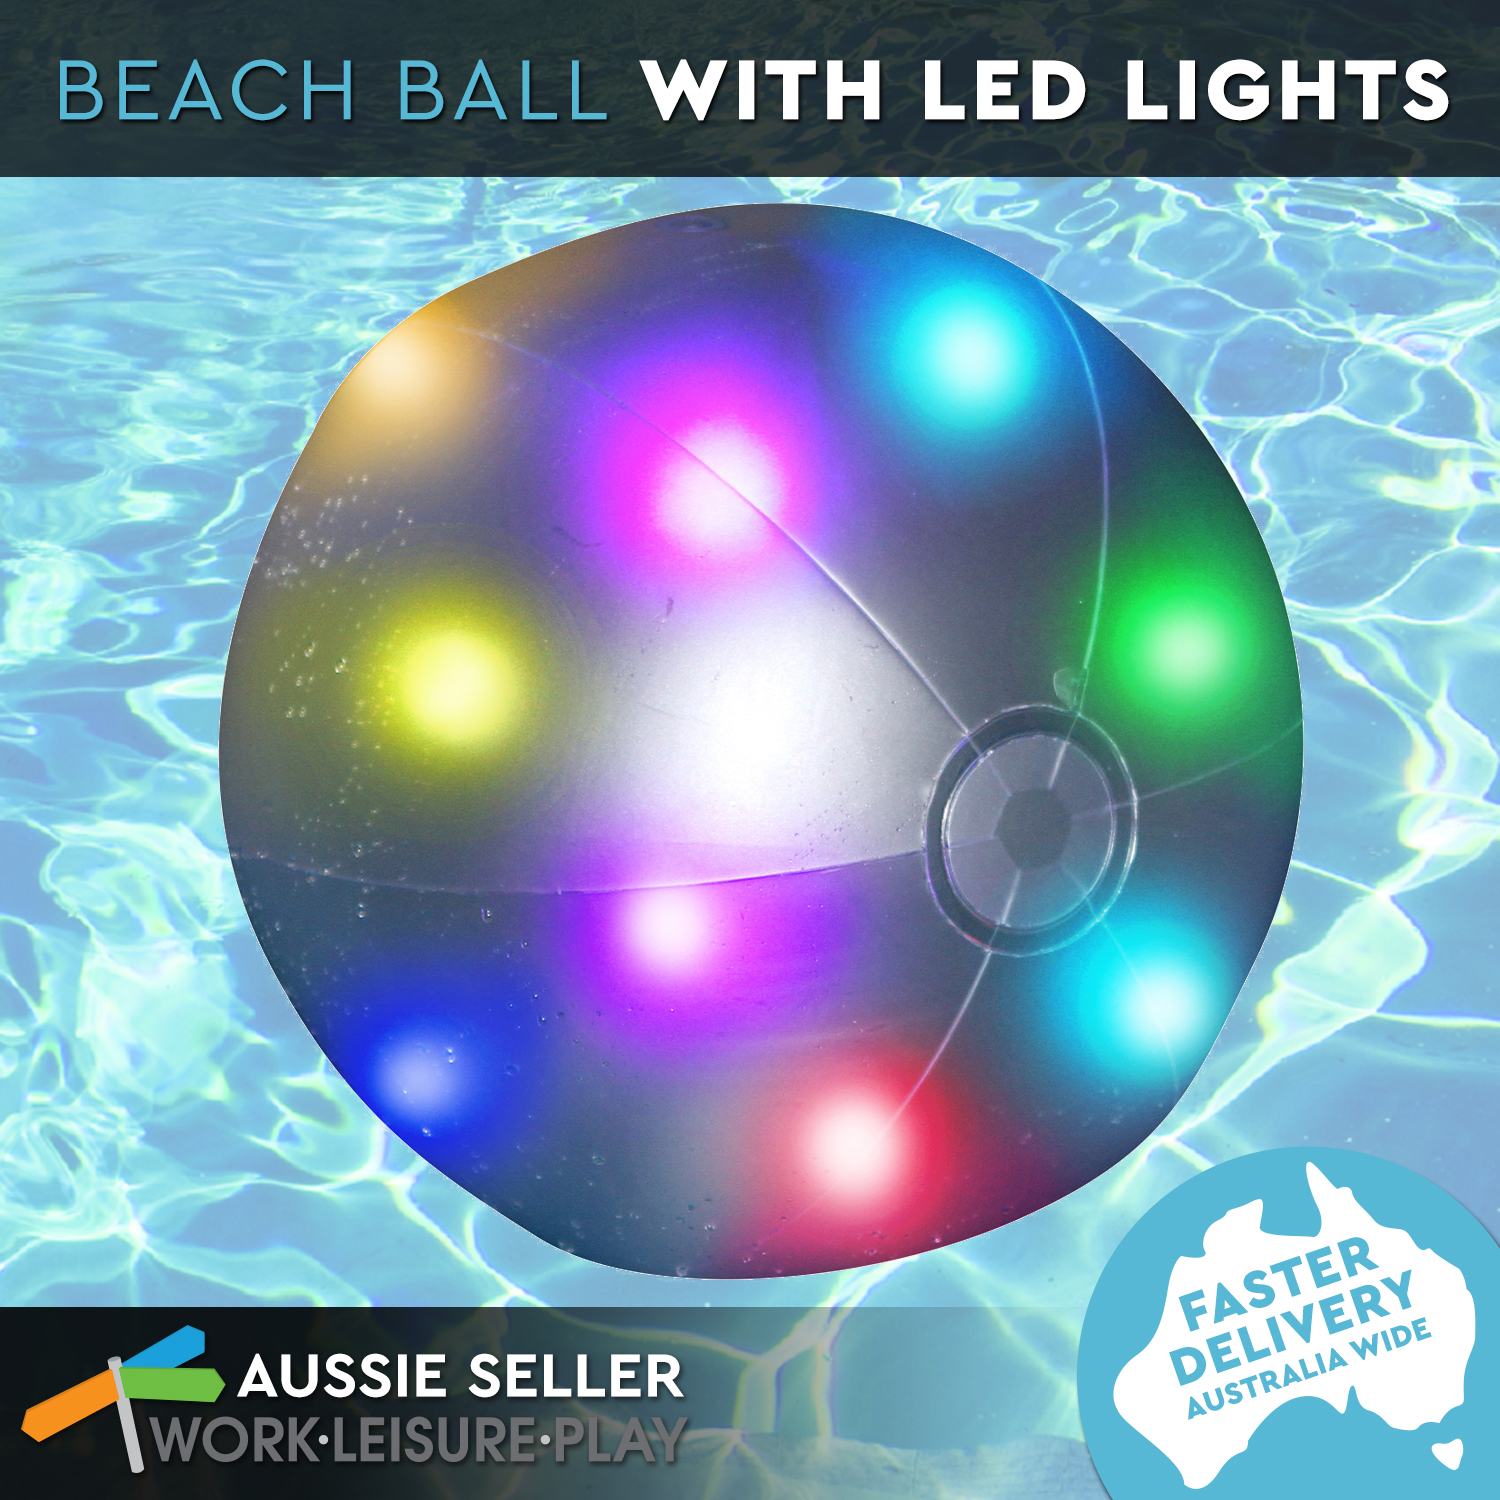 Led Light Up Beach Ball Inflatable Pool Water Toy By Airtime